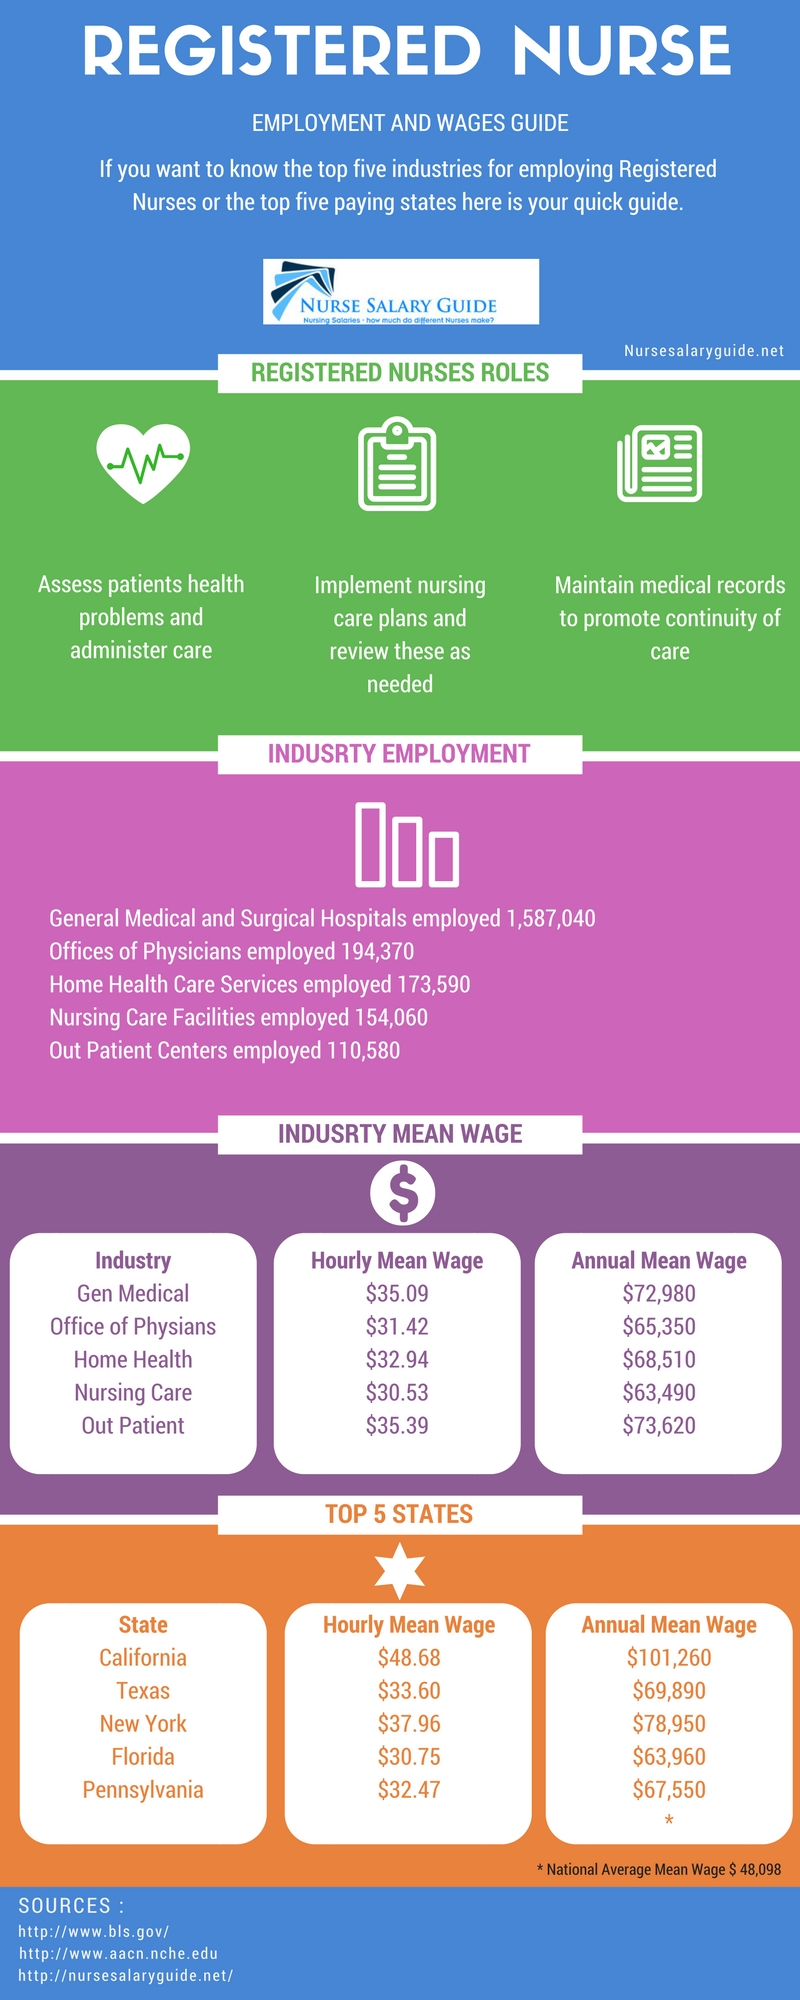 Career Opportunities for Registered Nurses - Infographic